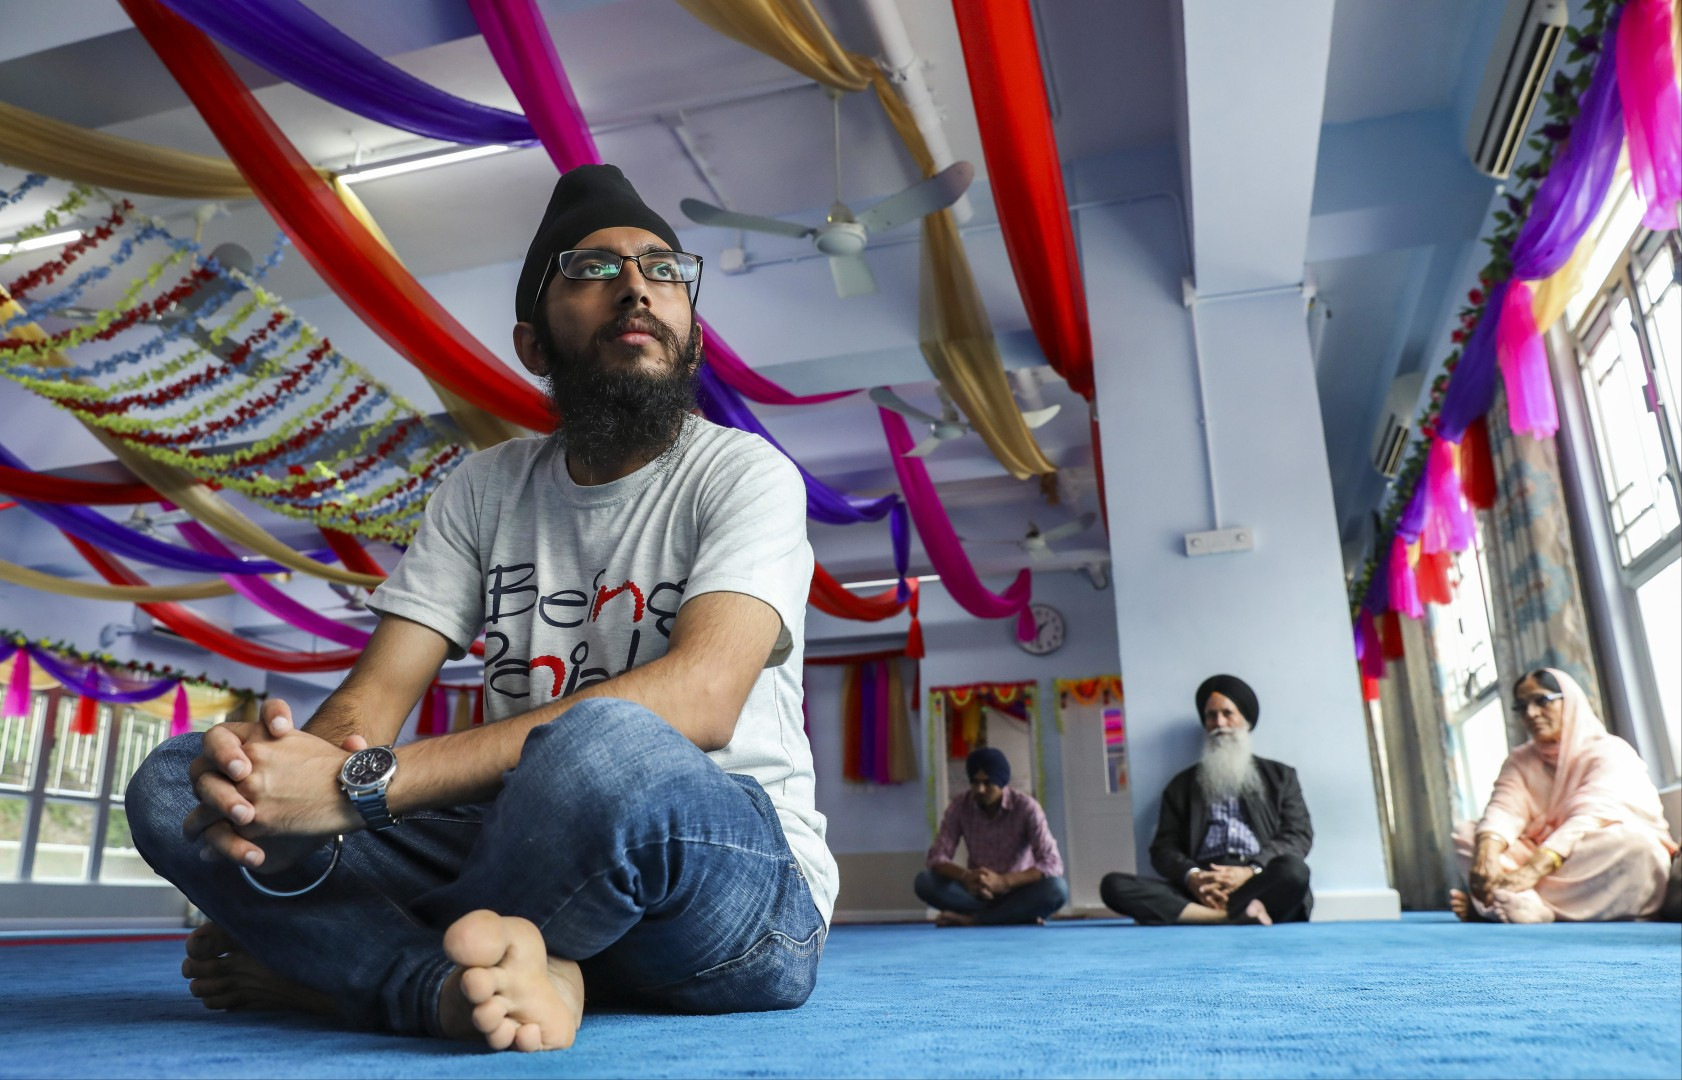 How ethnic minority workers are shunned in Hong Kong, and whether a